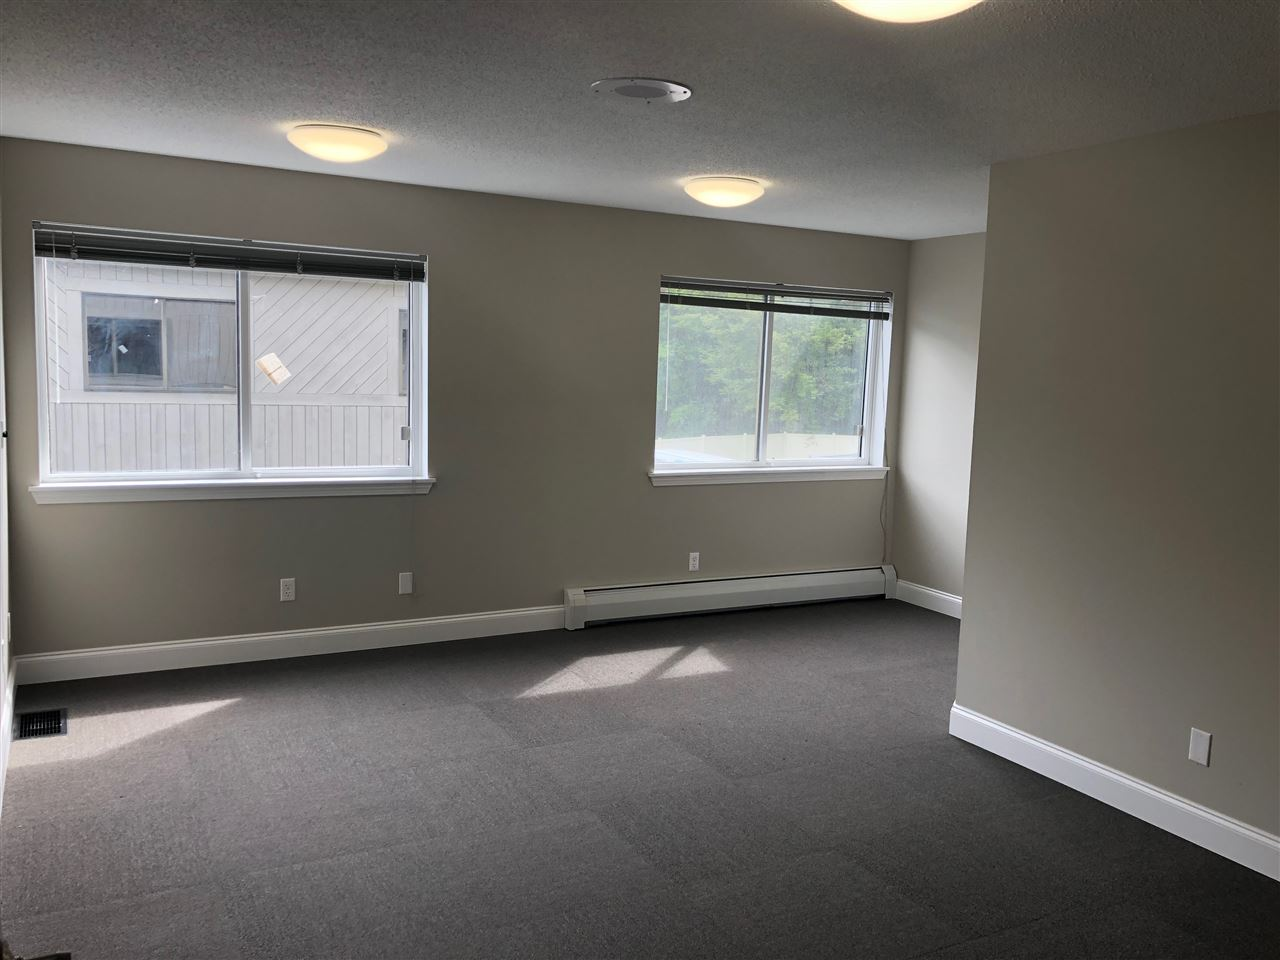 Terrific newly renovated office space. Square footage range from 213 sqft to 556. Some have lake views. Convenient location at Bayside Park, Colchester. Plenty of parking. Available today. Rent is one payment of $284/ mo to $741/mo. We have 8 offices available if you require more than one space. One office has full bathroom. Heat, AC, Electric, Water, Sewer, Plowing & Trash included.